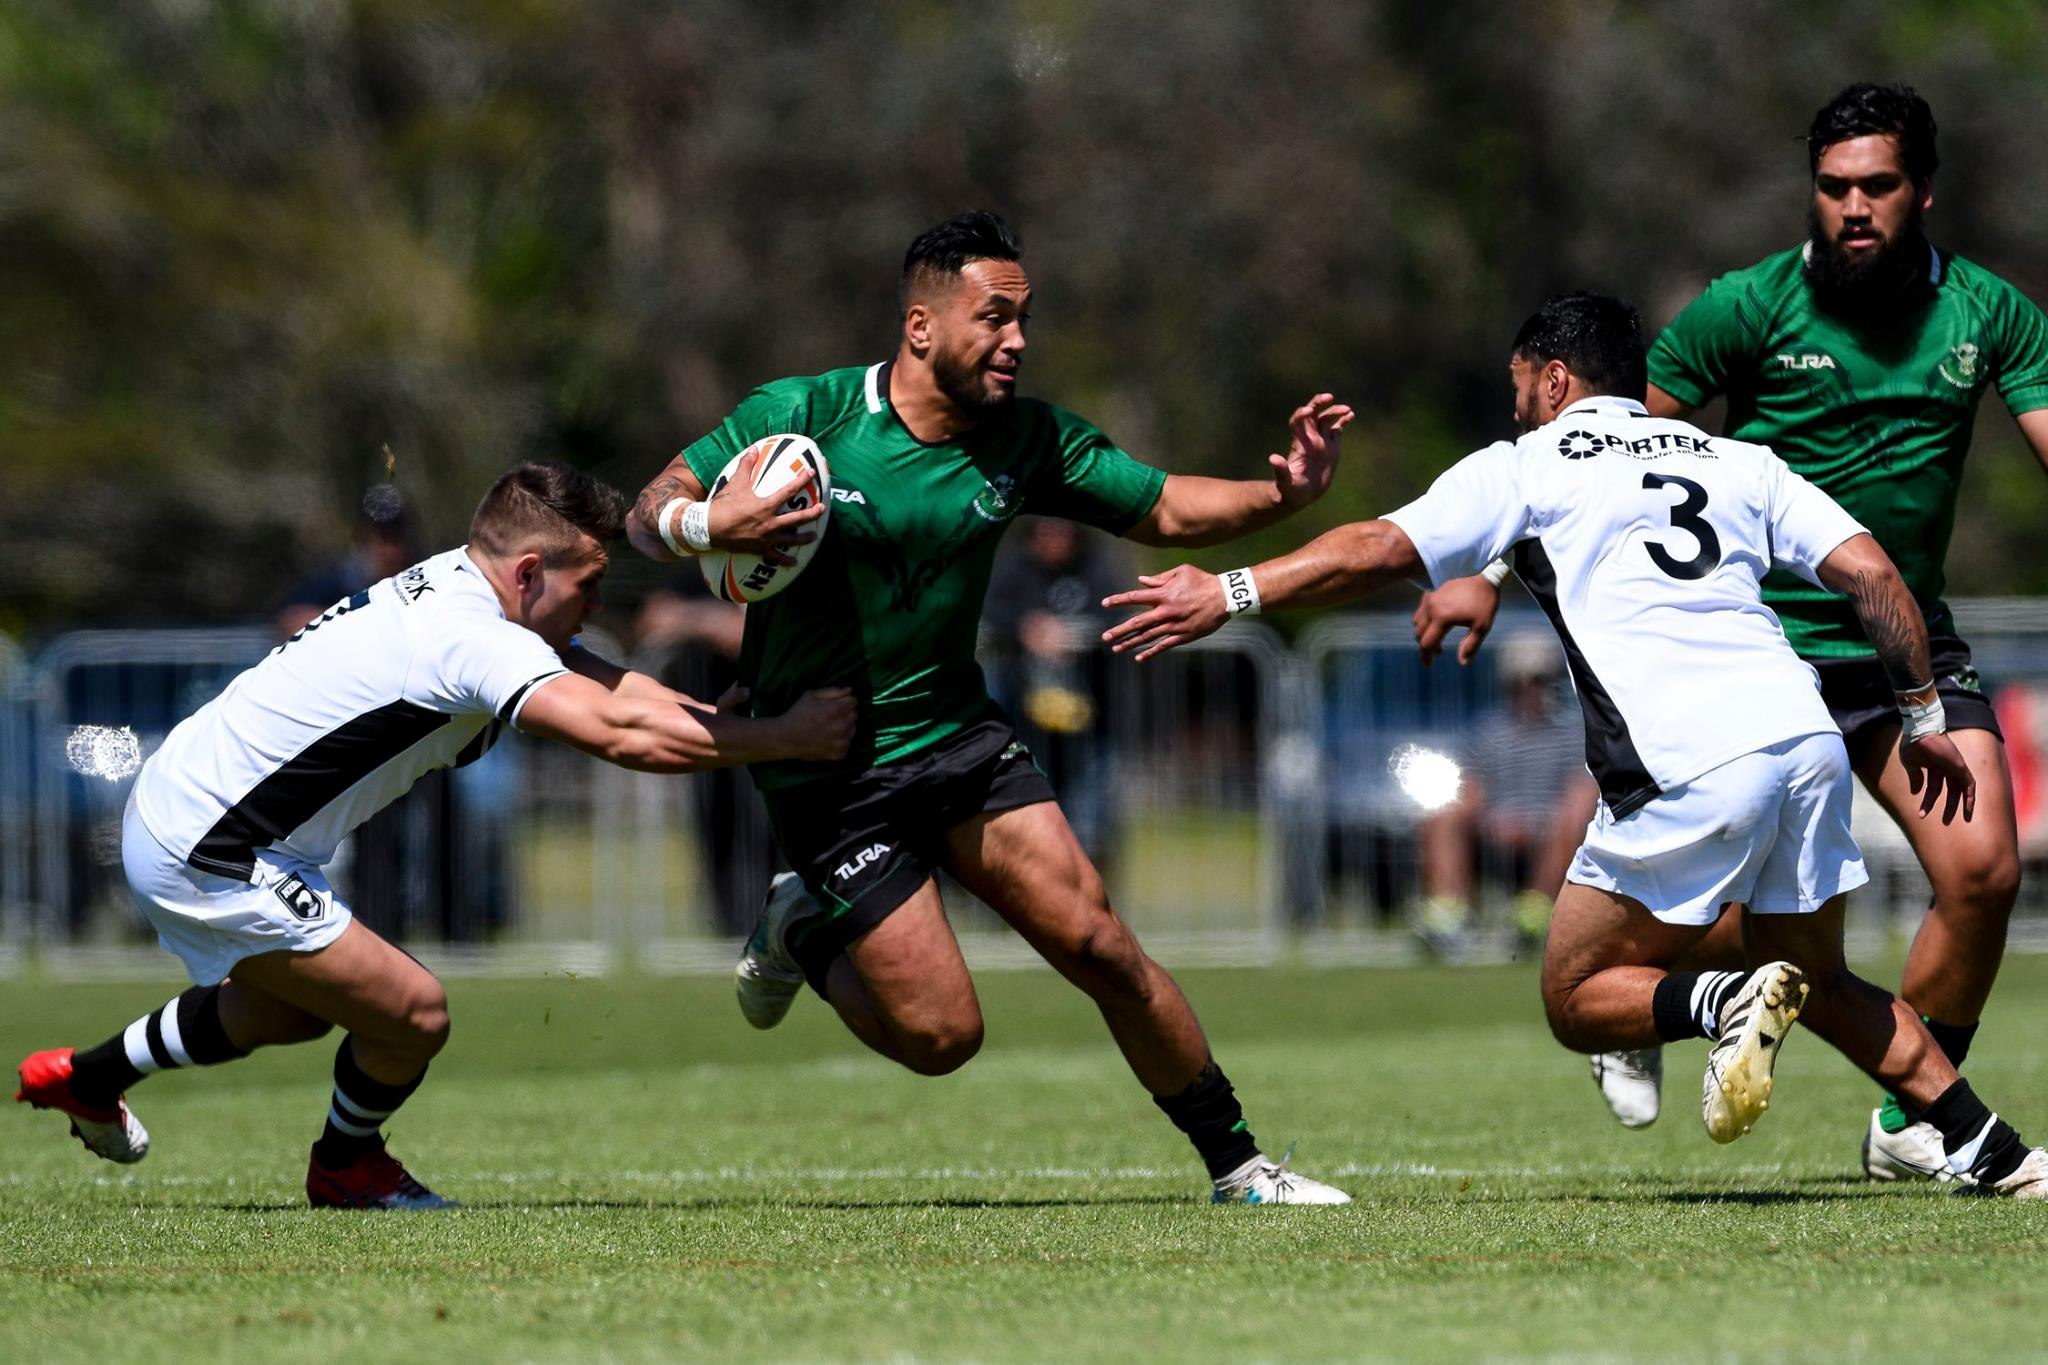 Mt Smart to host Residents v Maori and inaugural Club v Schools matches